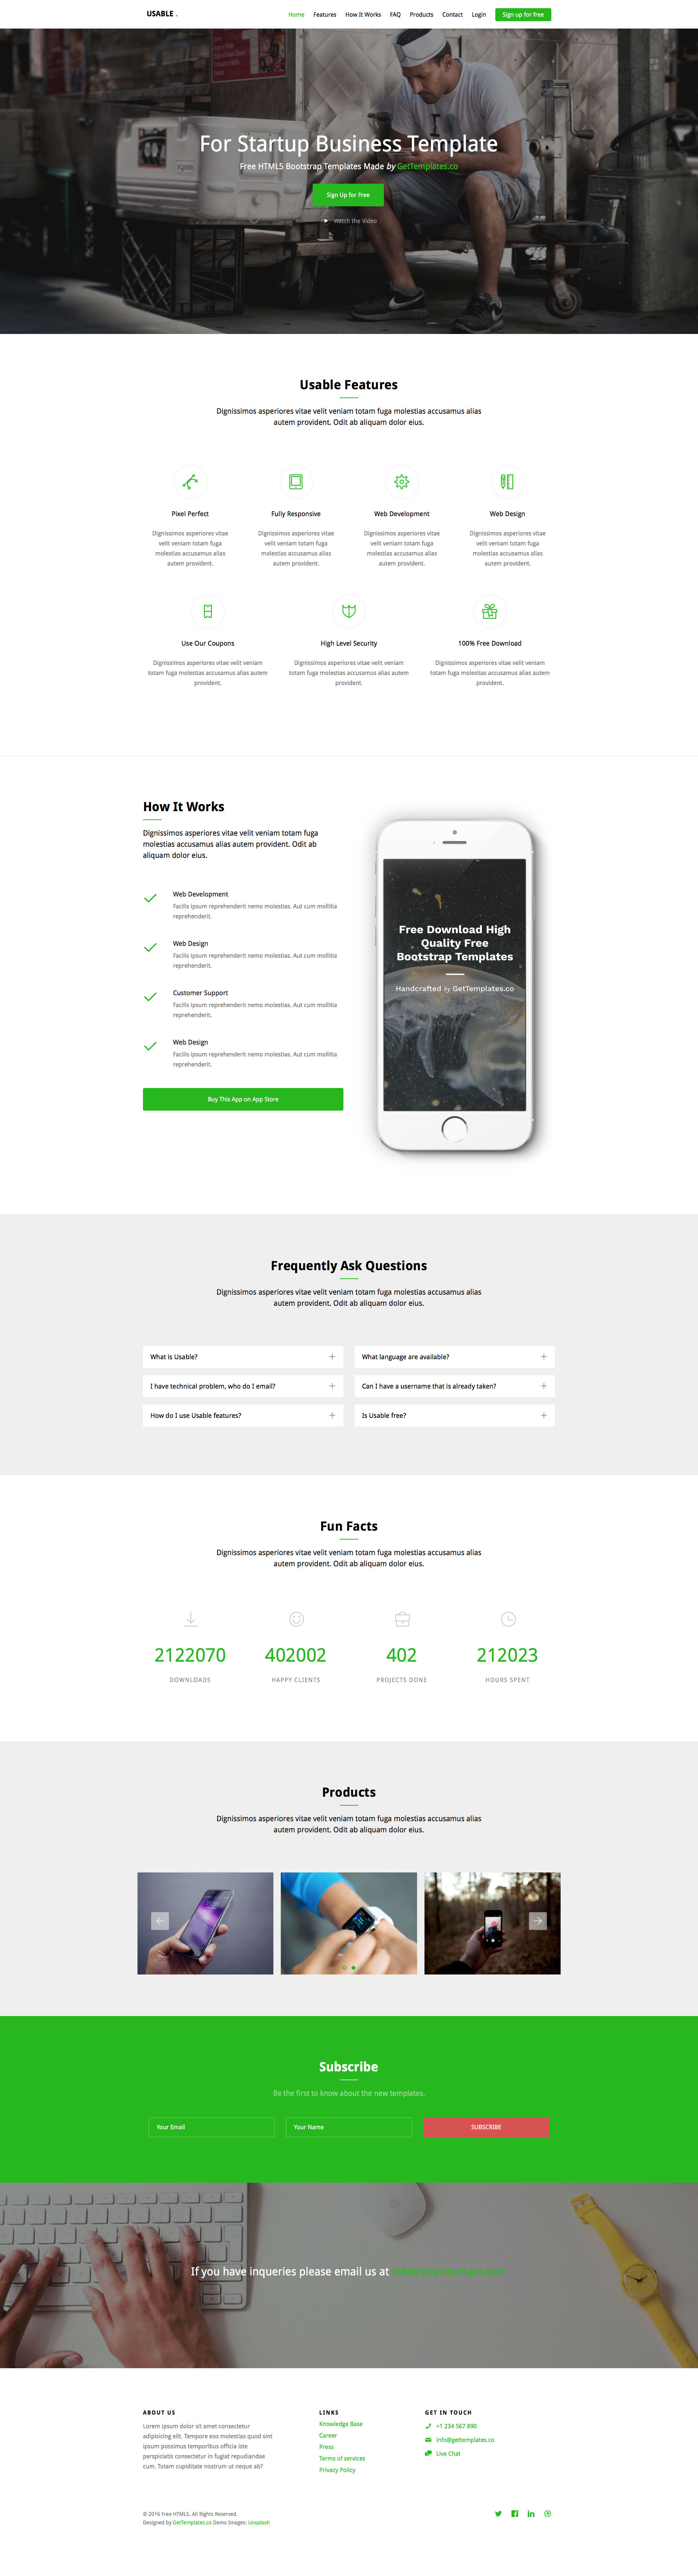 Free Html Responsive Single Page Template Flusk A Responsive Multi - One page website template html5 responsive free download